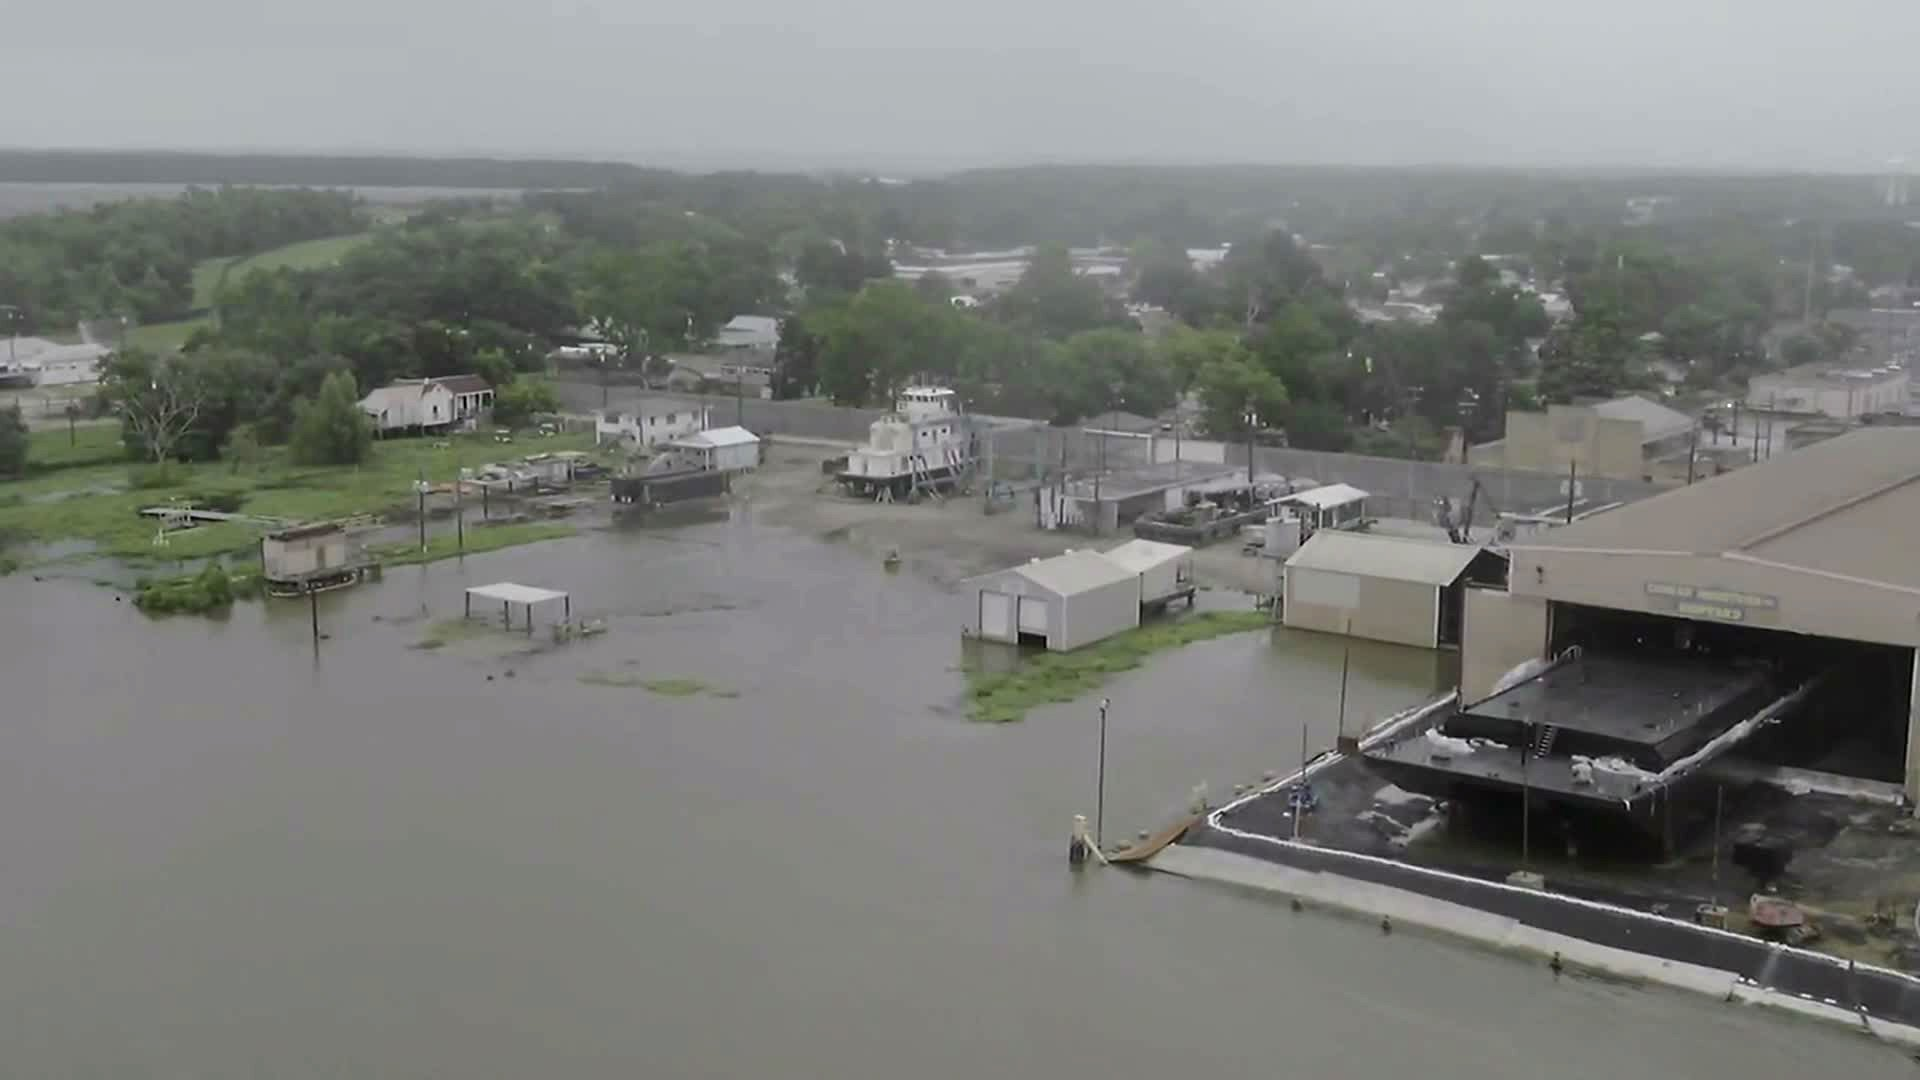 PHOTOS: Barry brings heavy rainfall, floods to Louisiana